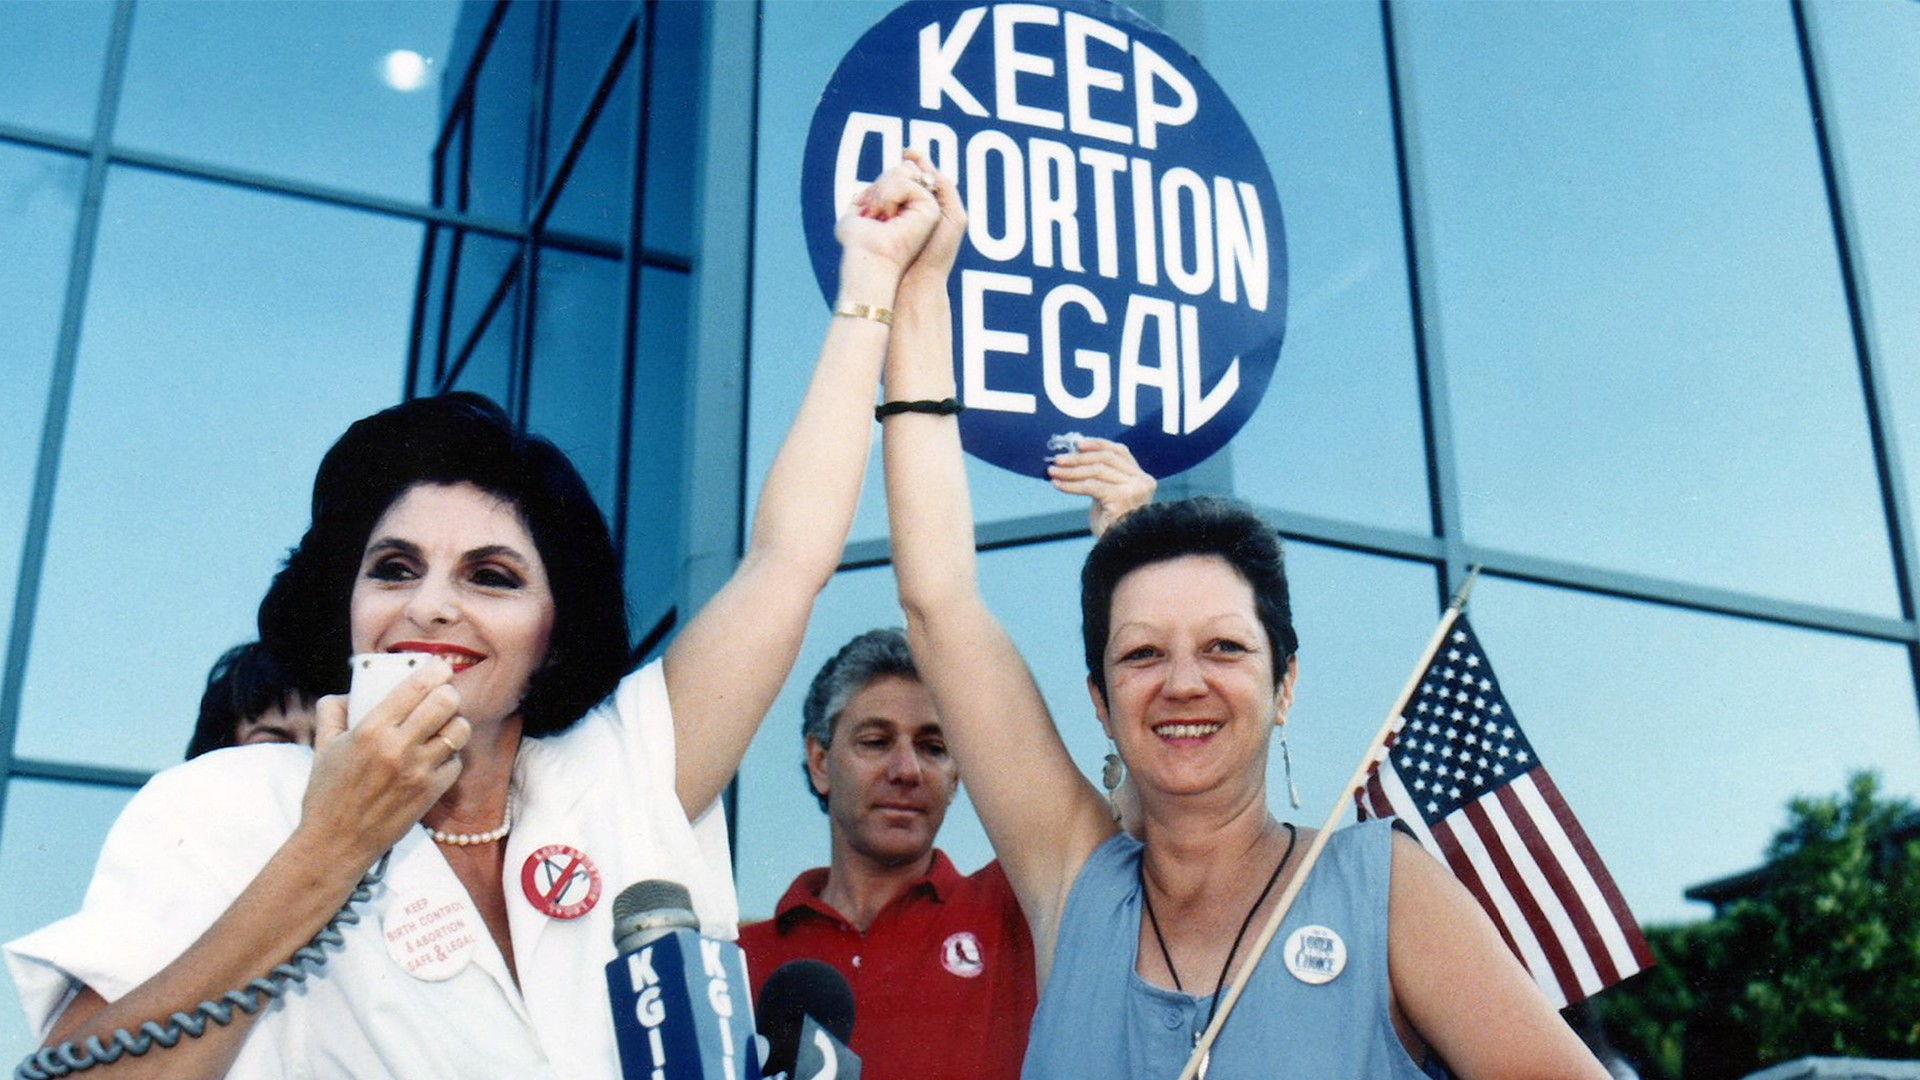 The 44th Anniversary of Roe v. Wade